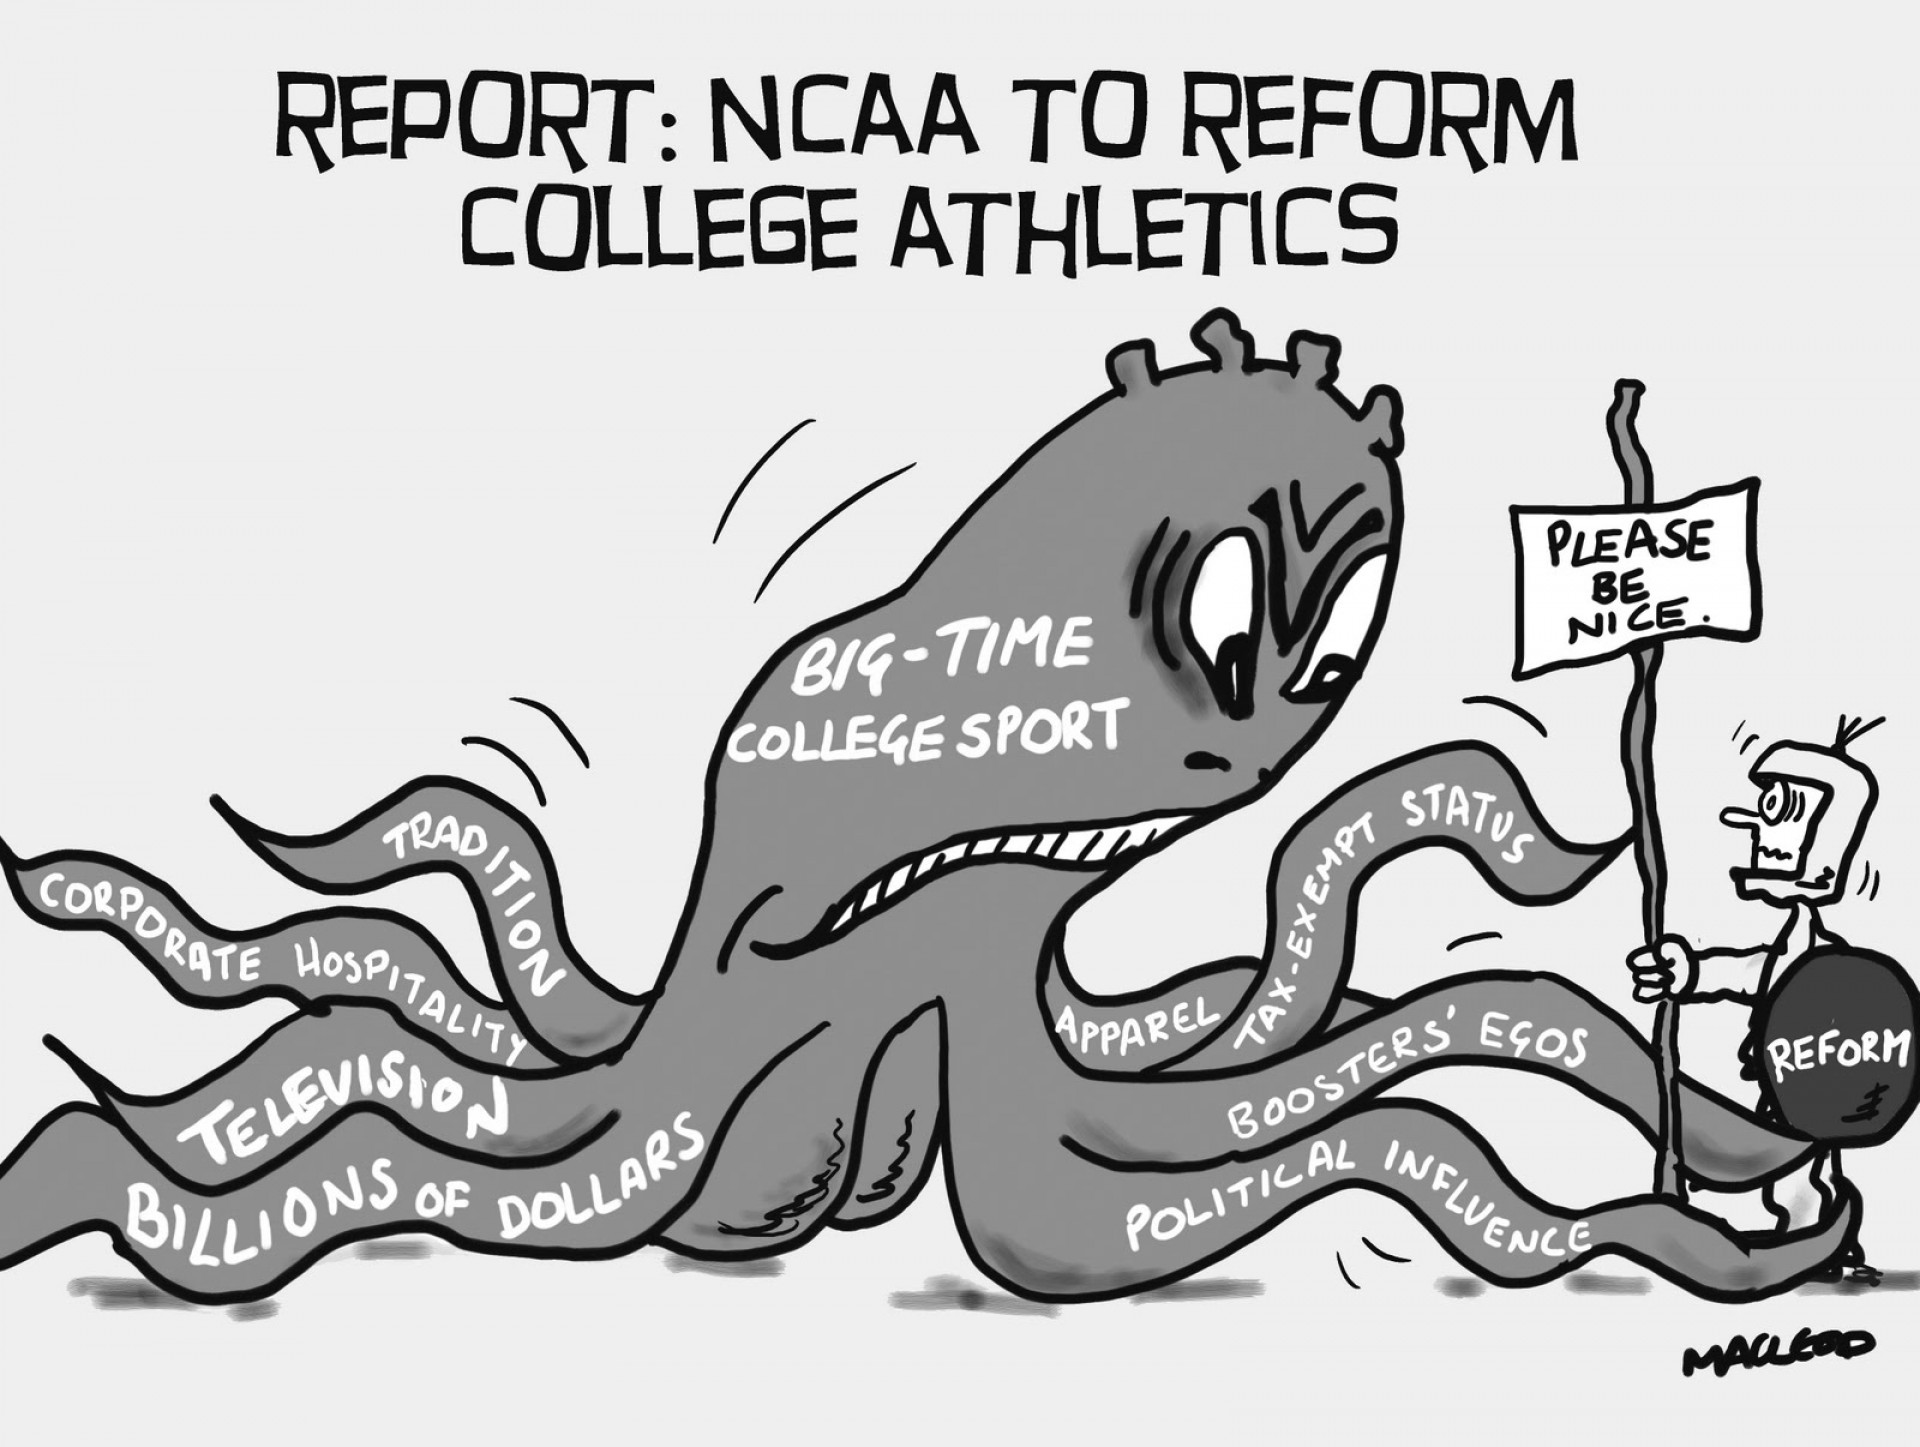 Essay paying college athletes